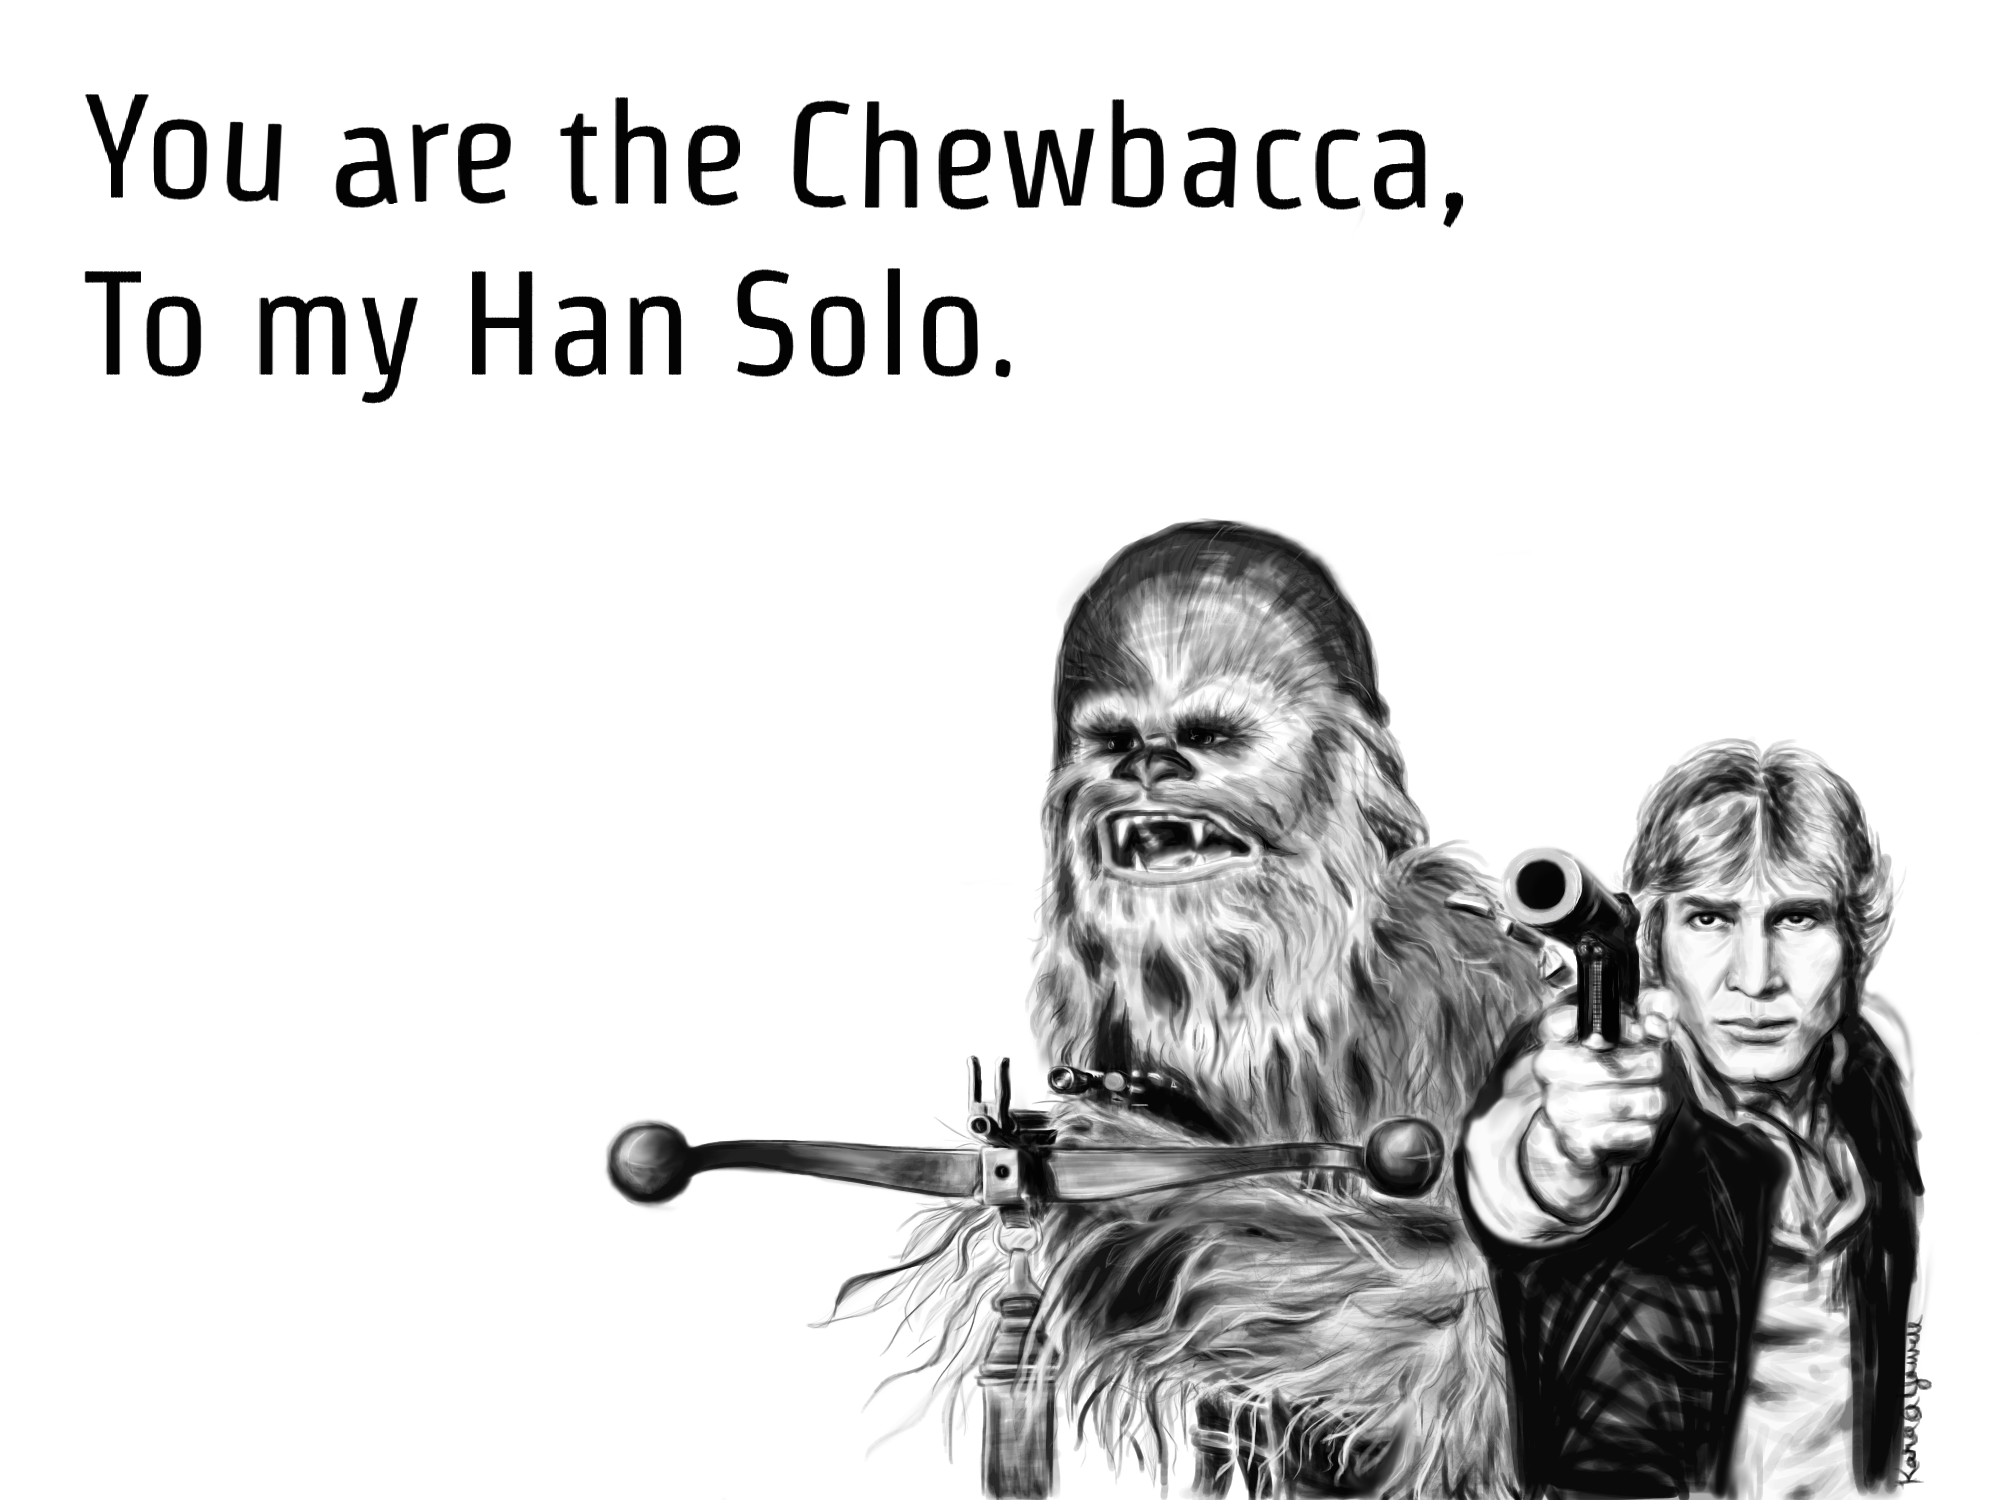 You're the Chewbacca to my Han Solo